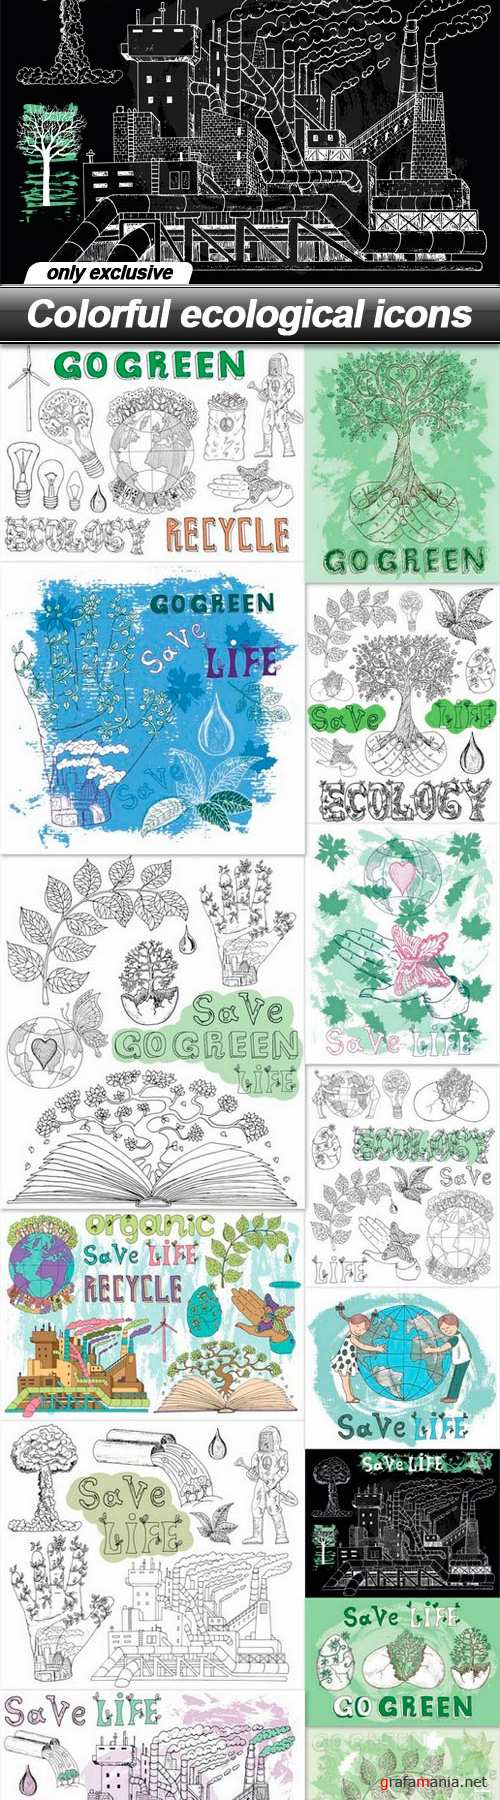 Colorful ecological icons - 14 EPS